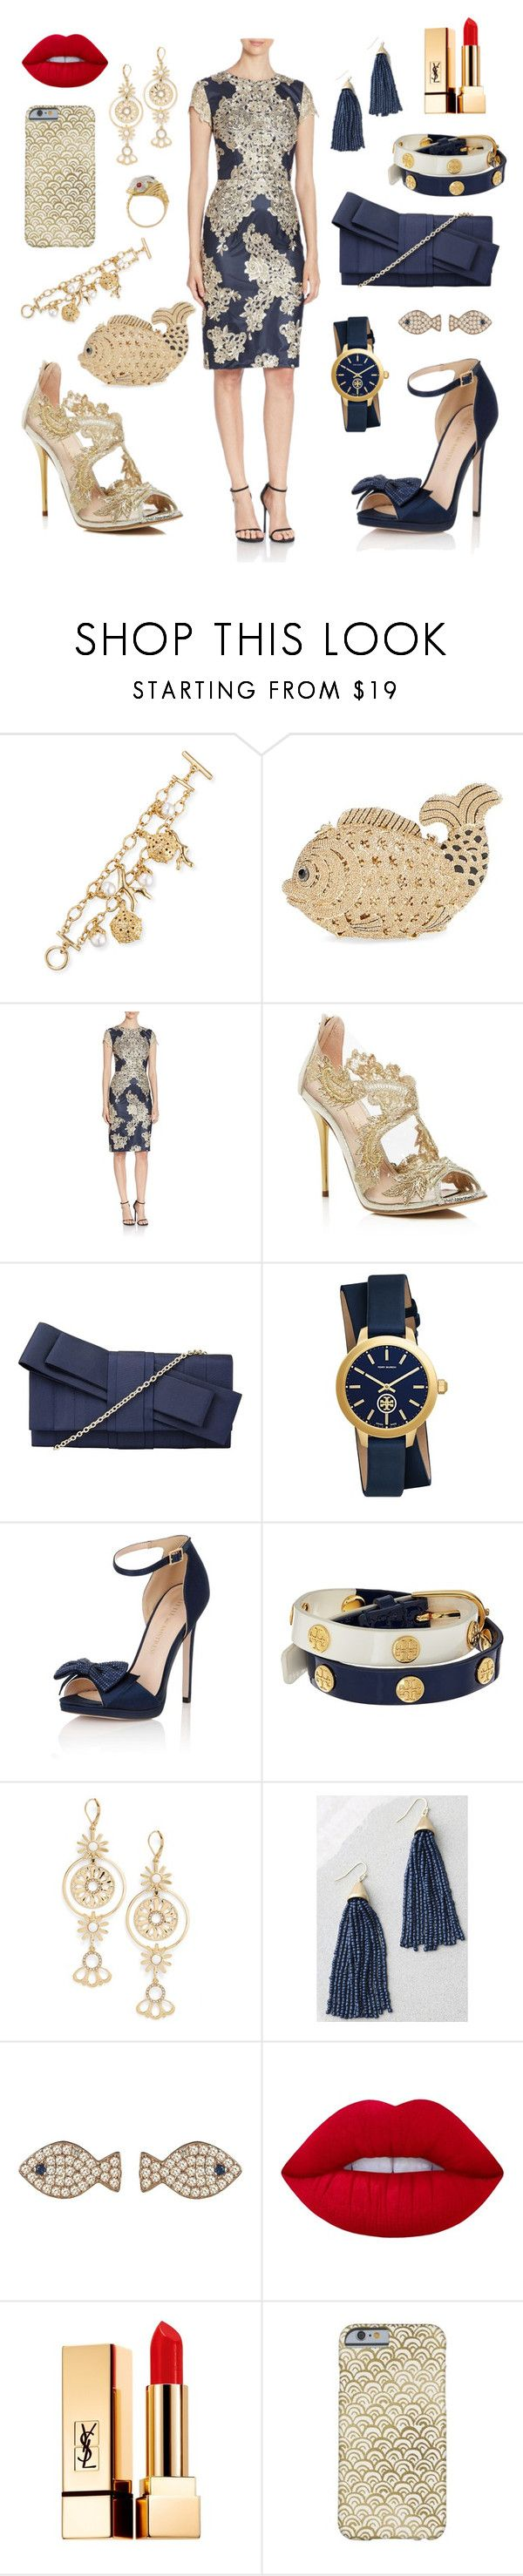 """Rent Frock Repeat for the Waterkeeper Gala Toronto"" by maryrosemclennan on Polyvore featuring Oscar de la Renta, Tasha, David Meister, John Lewis, Tory Burch, Little Mistress, Kate Spade, LULUS, Latelita and Lime Crime"